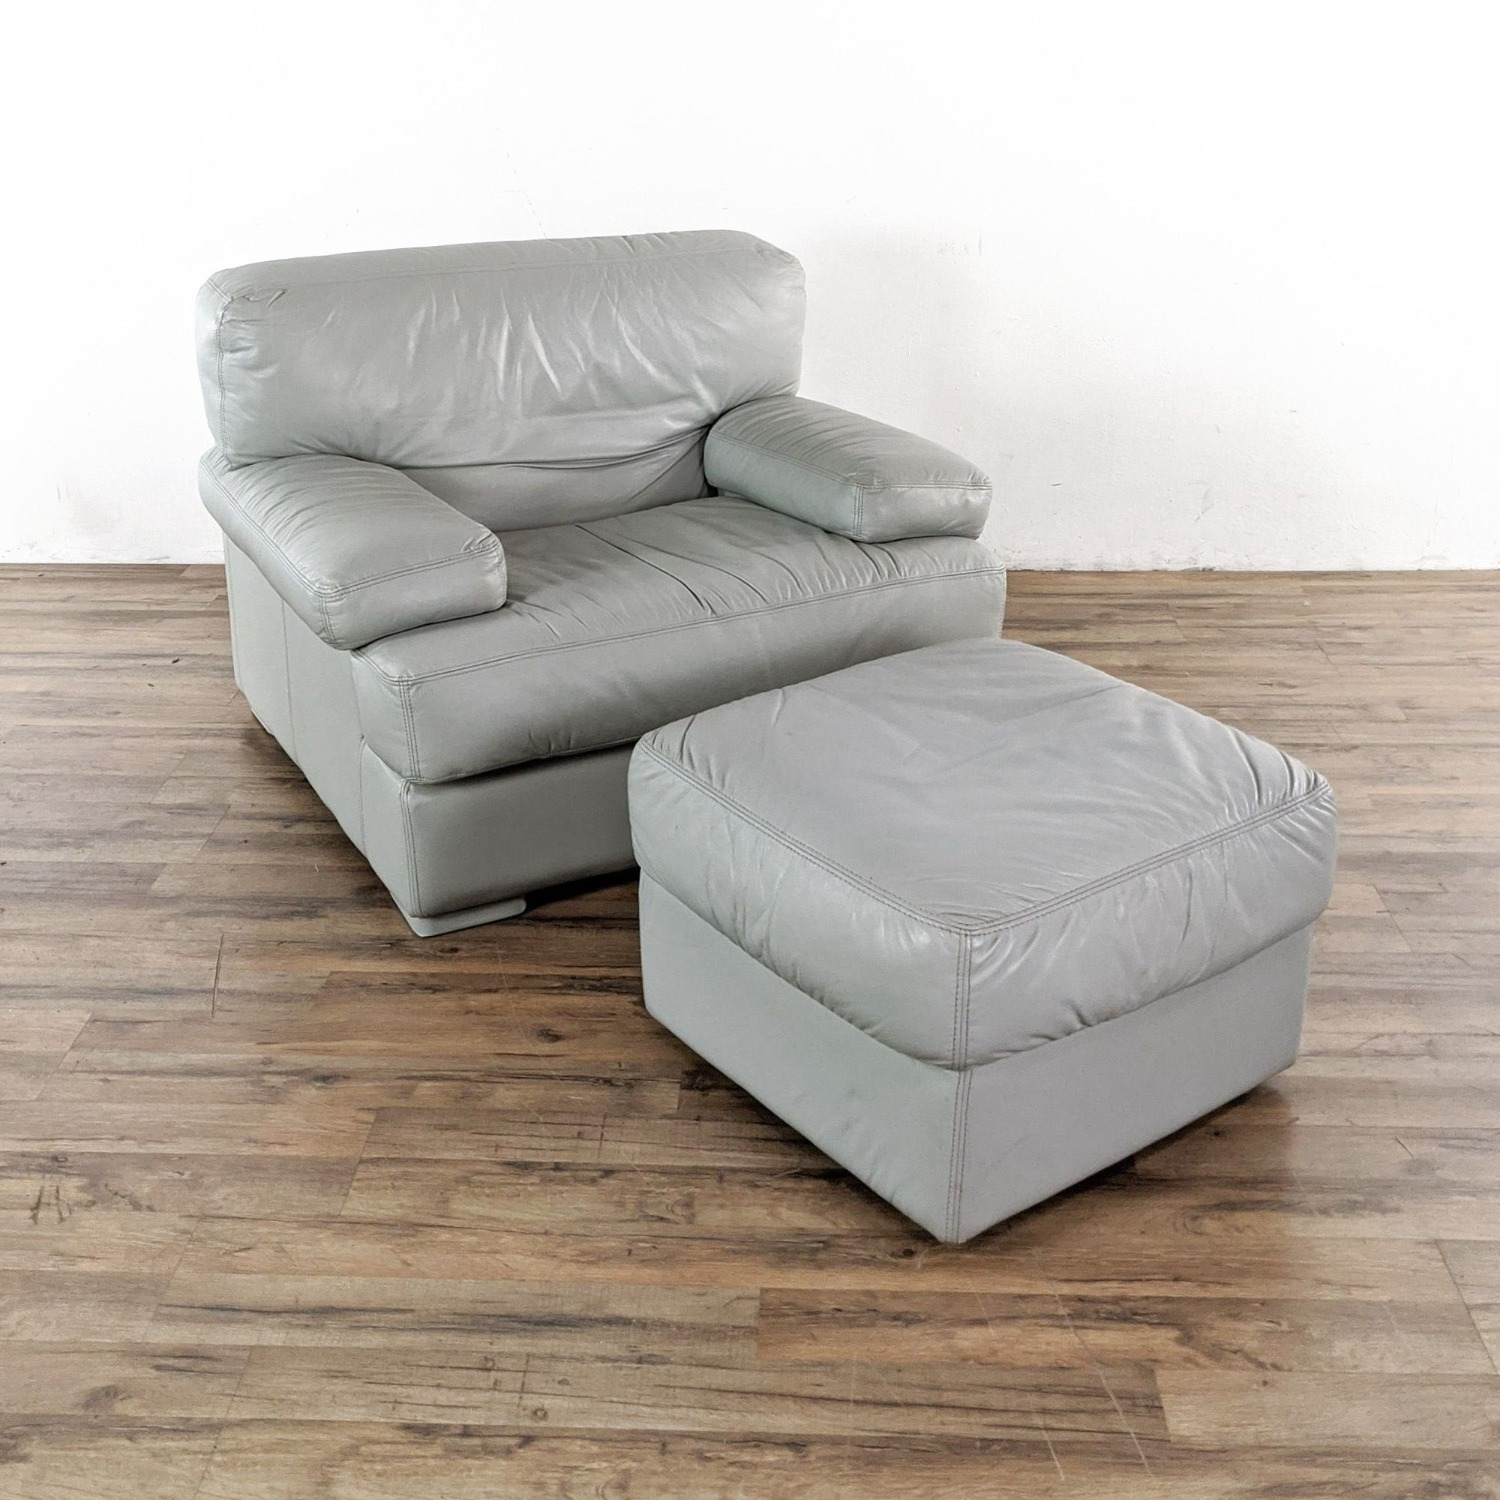 Natuzzi Italian Leather Chair and Ottoman in Gray - image-2